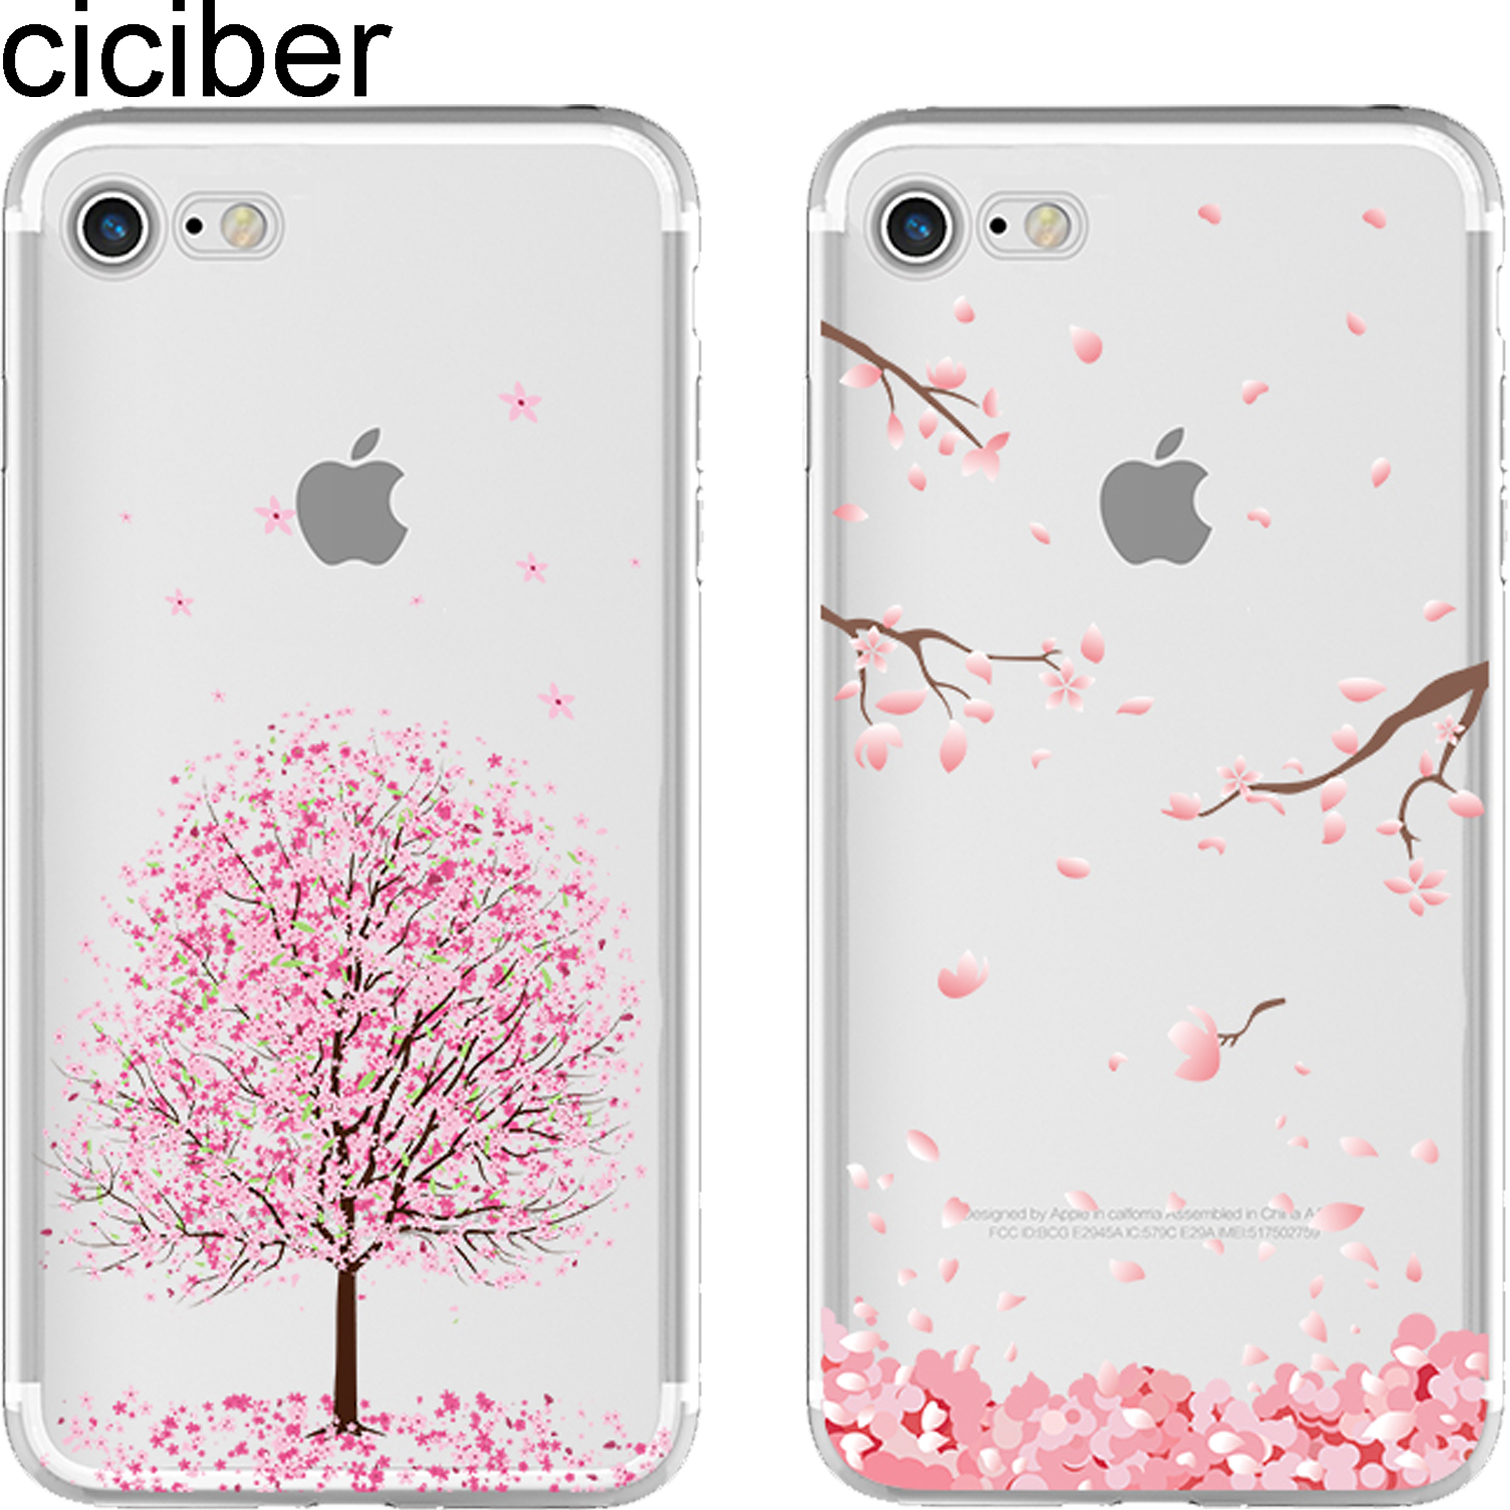 ciciber Romantic Sweet Cherry Blossom Cat Soft TPU Հեռախոսազանգերի ծածկոց IPhone 11 Pro Max 6 6S 7 8 Plus 5S SE X XR XS Max Funda